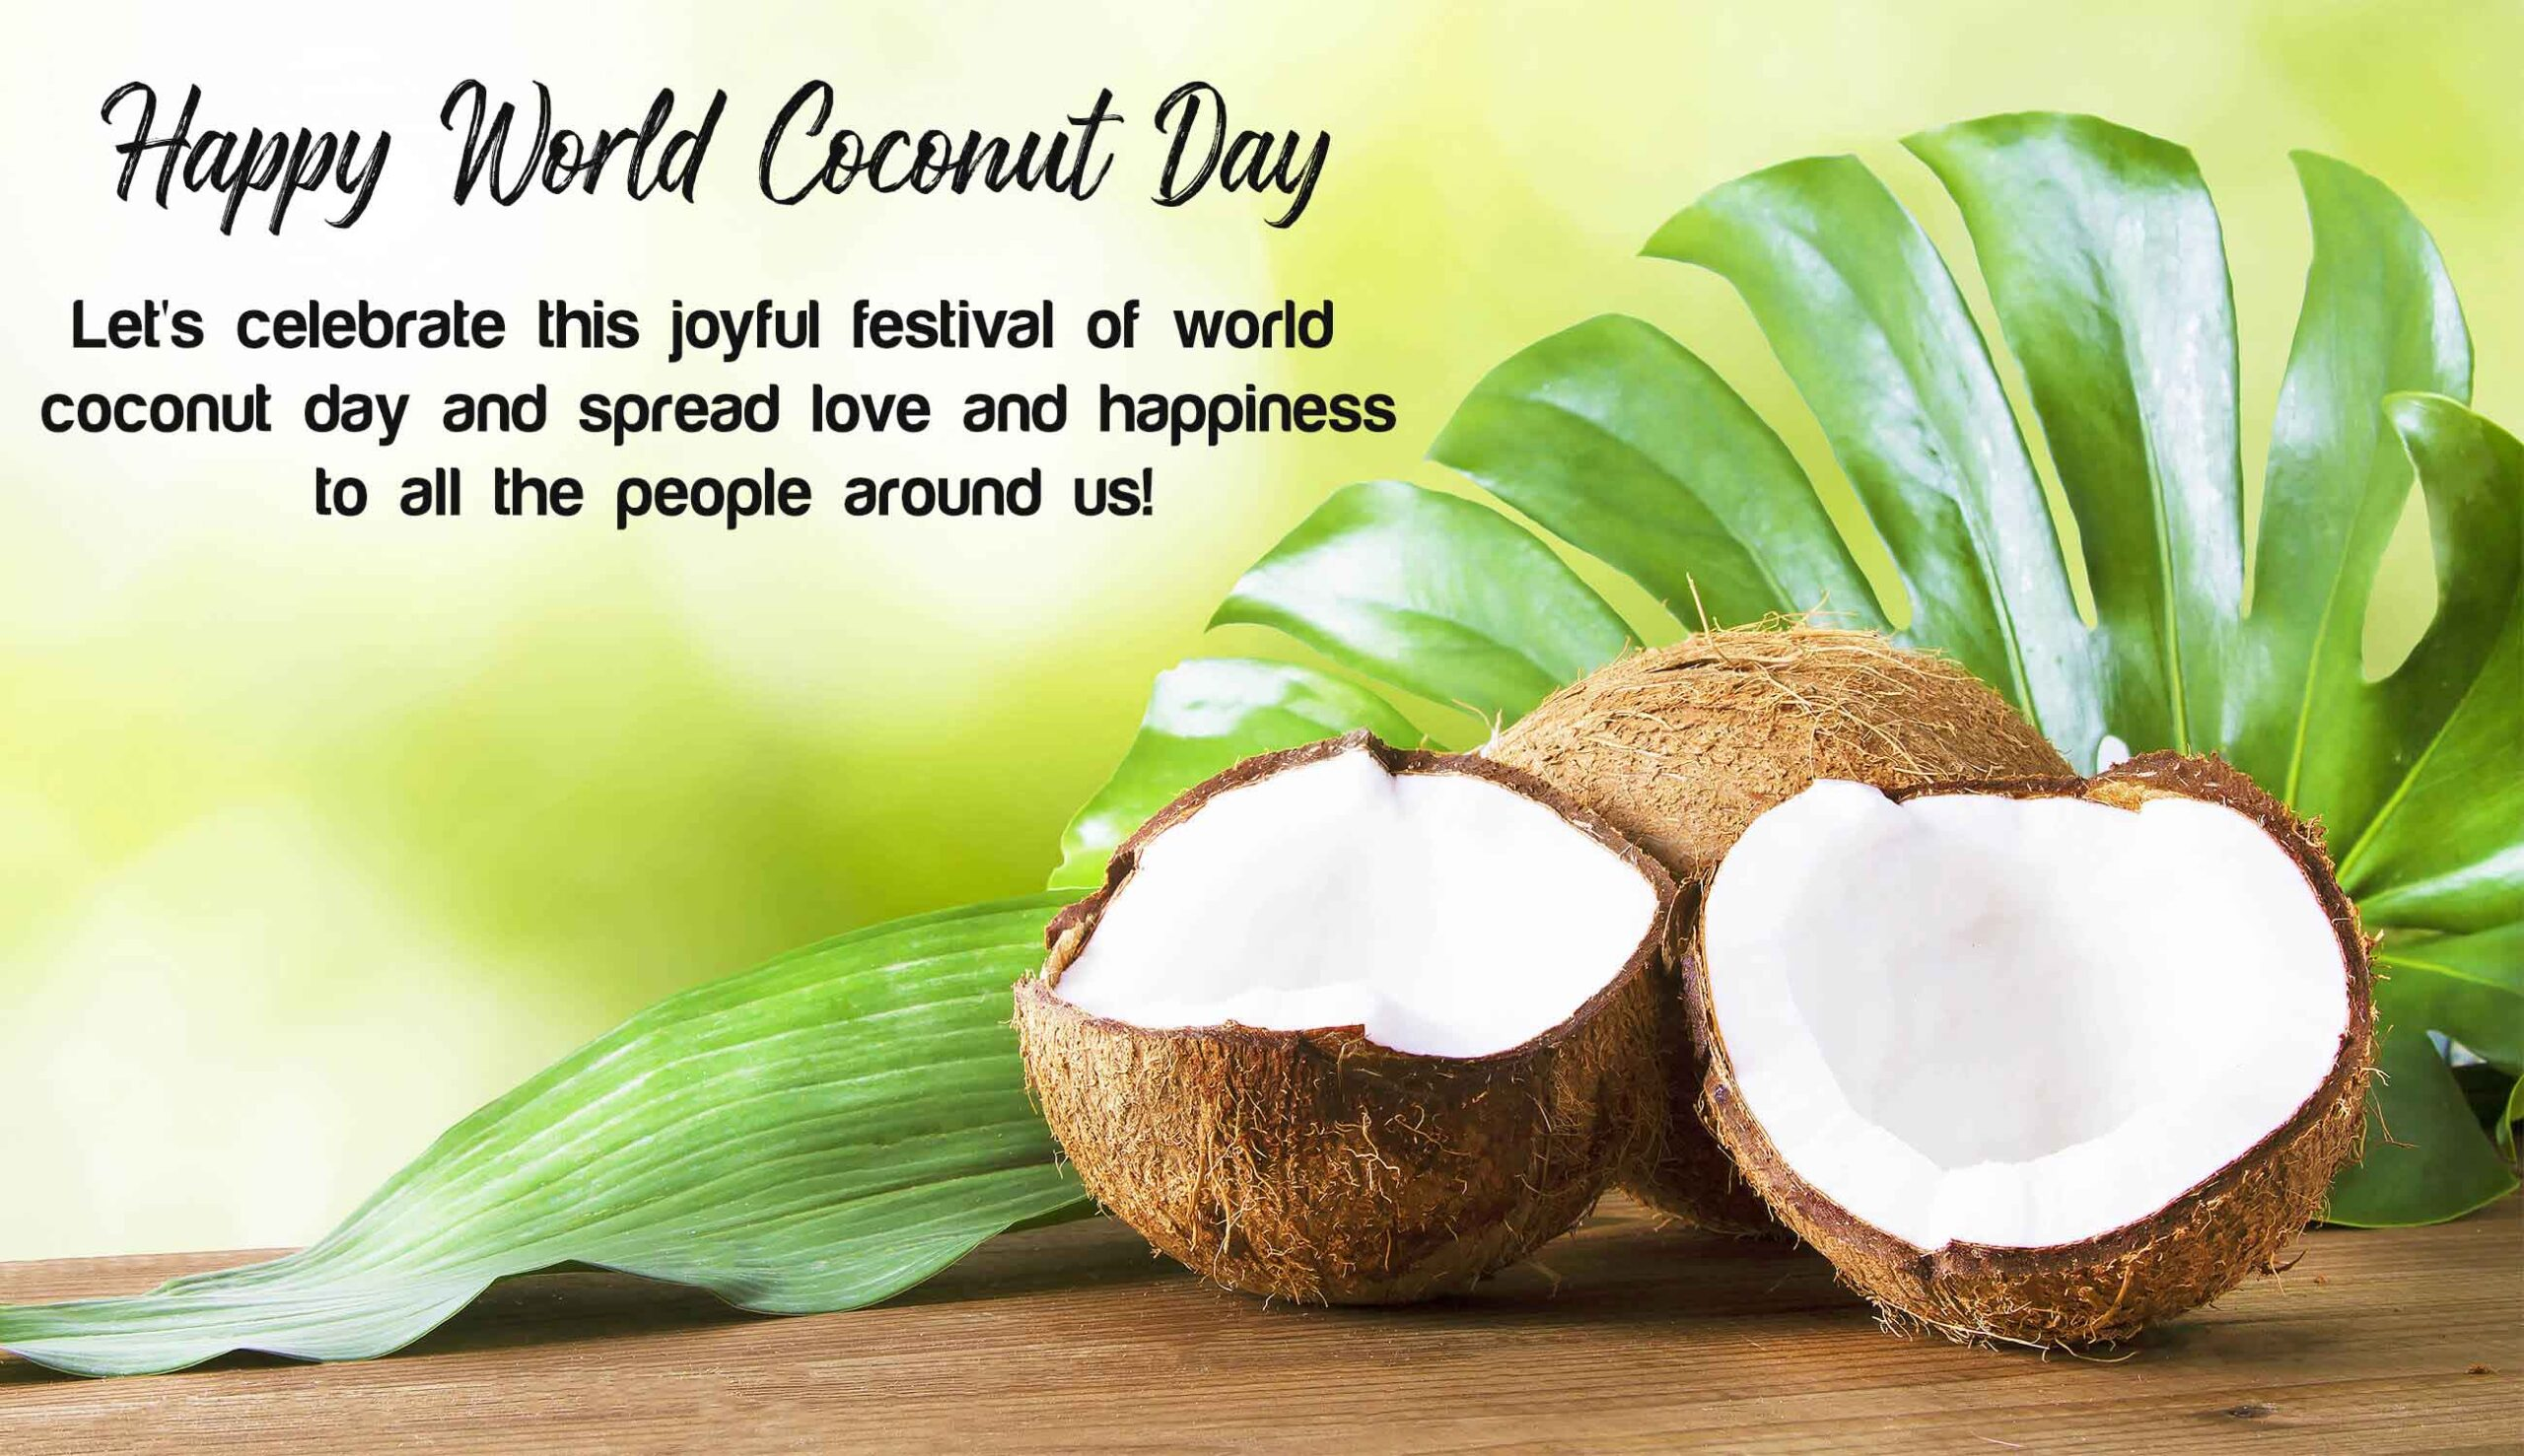 Happy World Coconut Day Quotes, Images, Theme